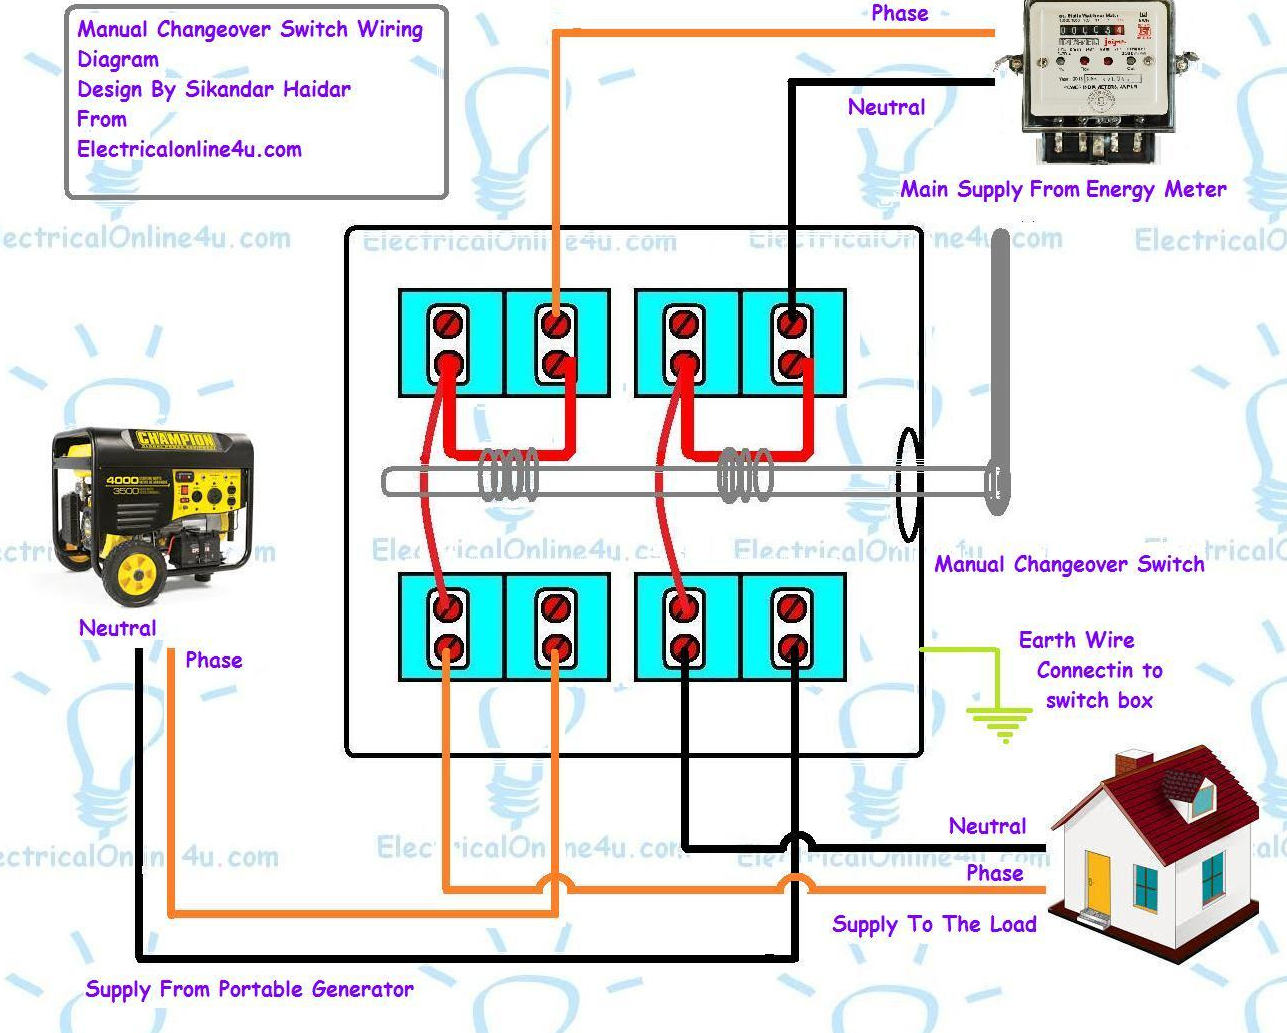 distribution board wiring diagram frontal brain no labels manual changeover switch for portable generator m